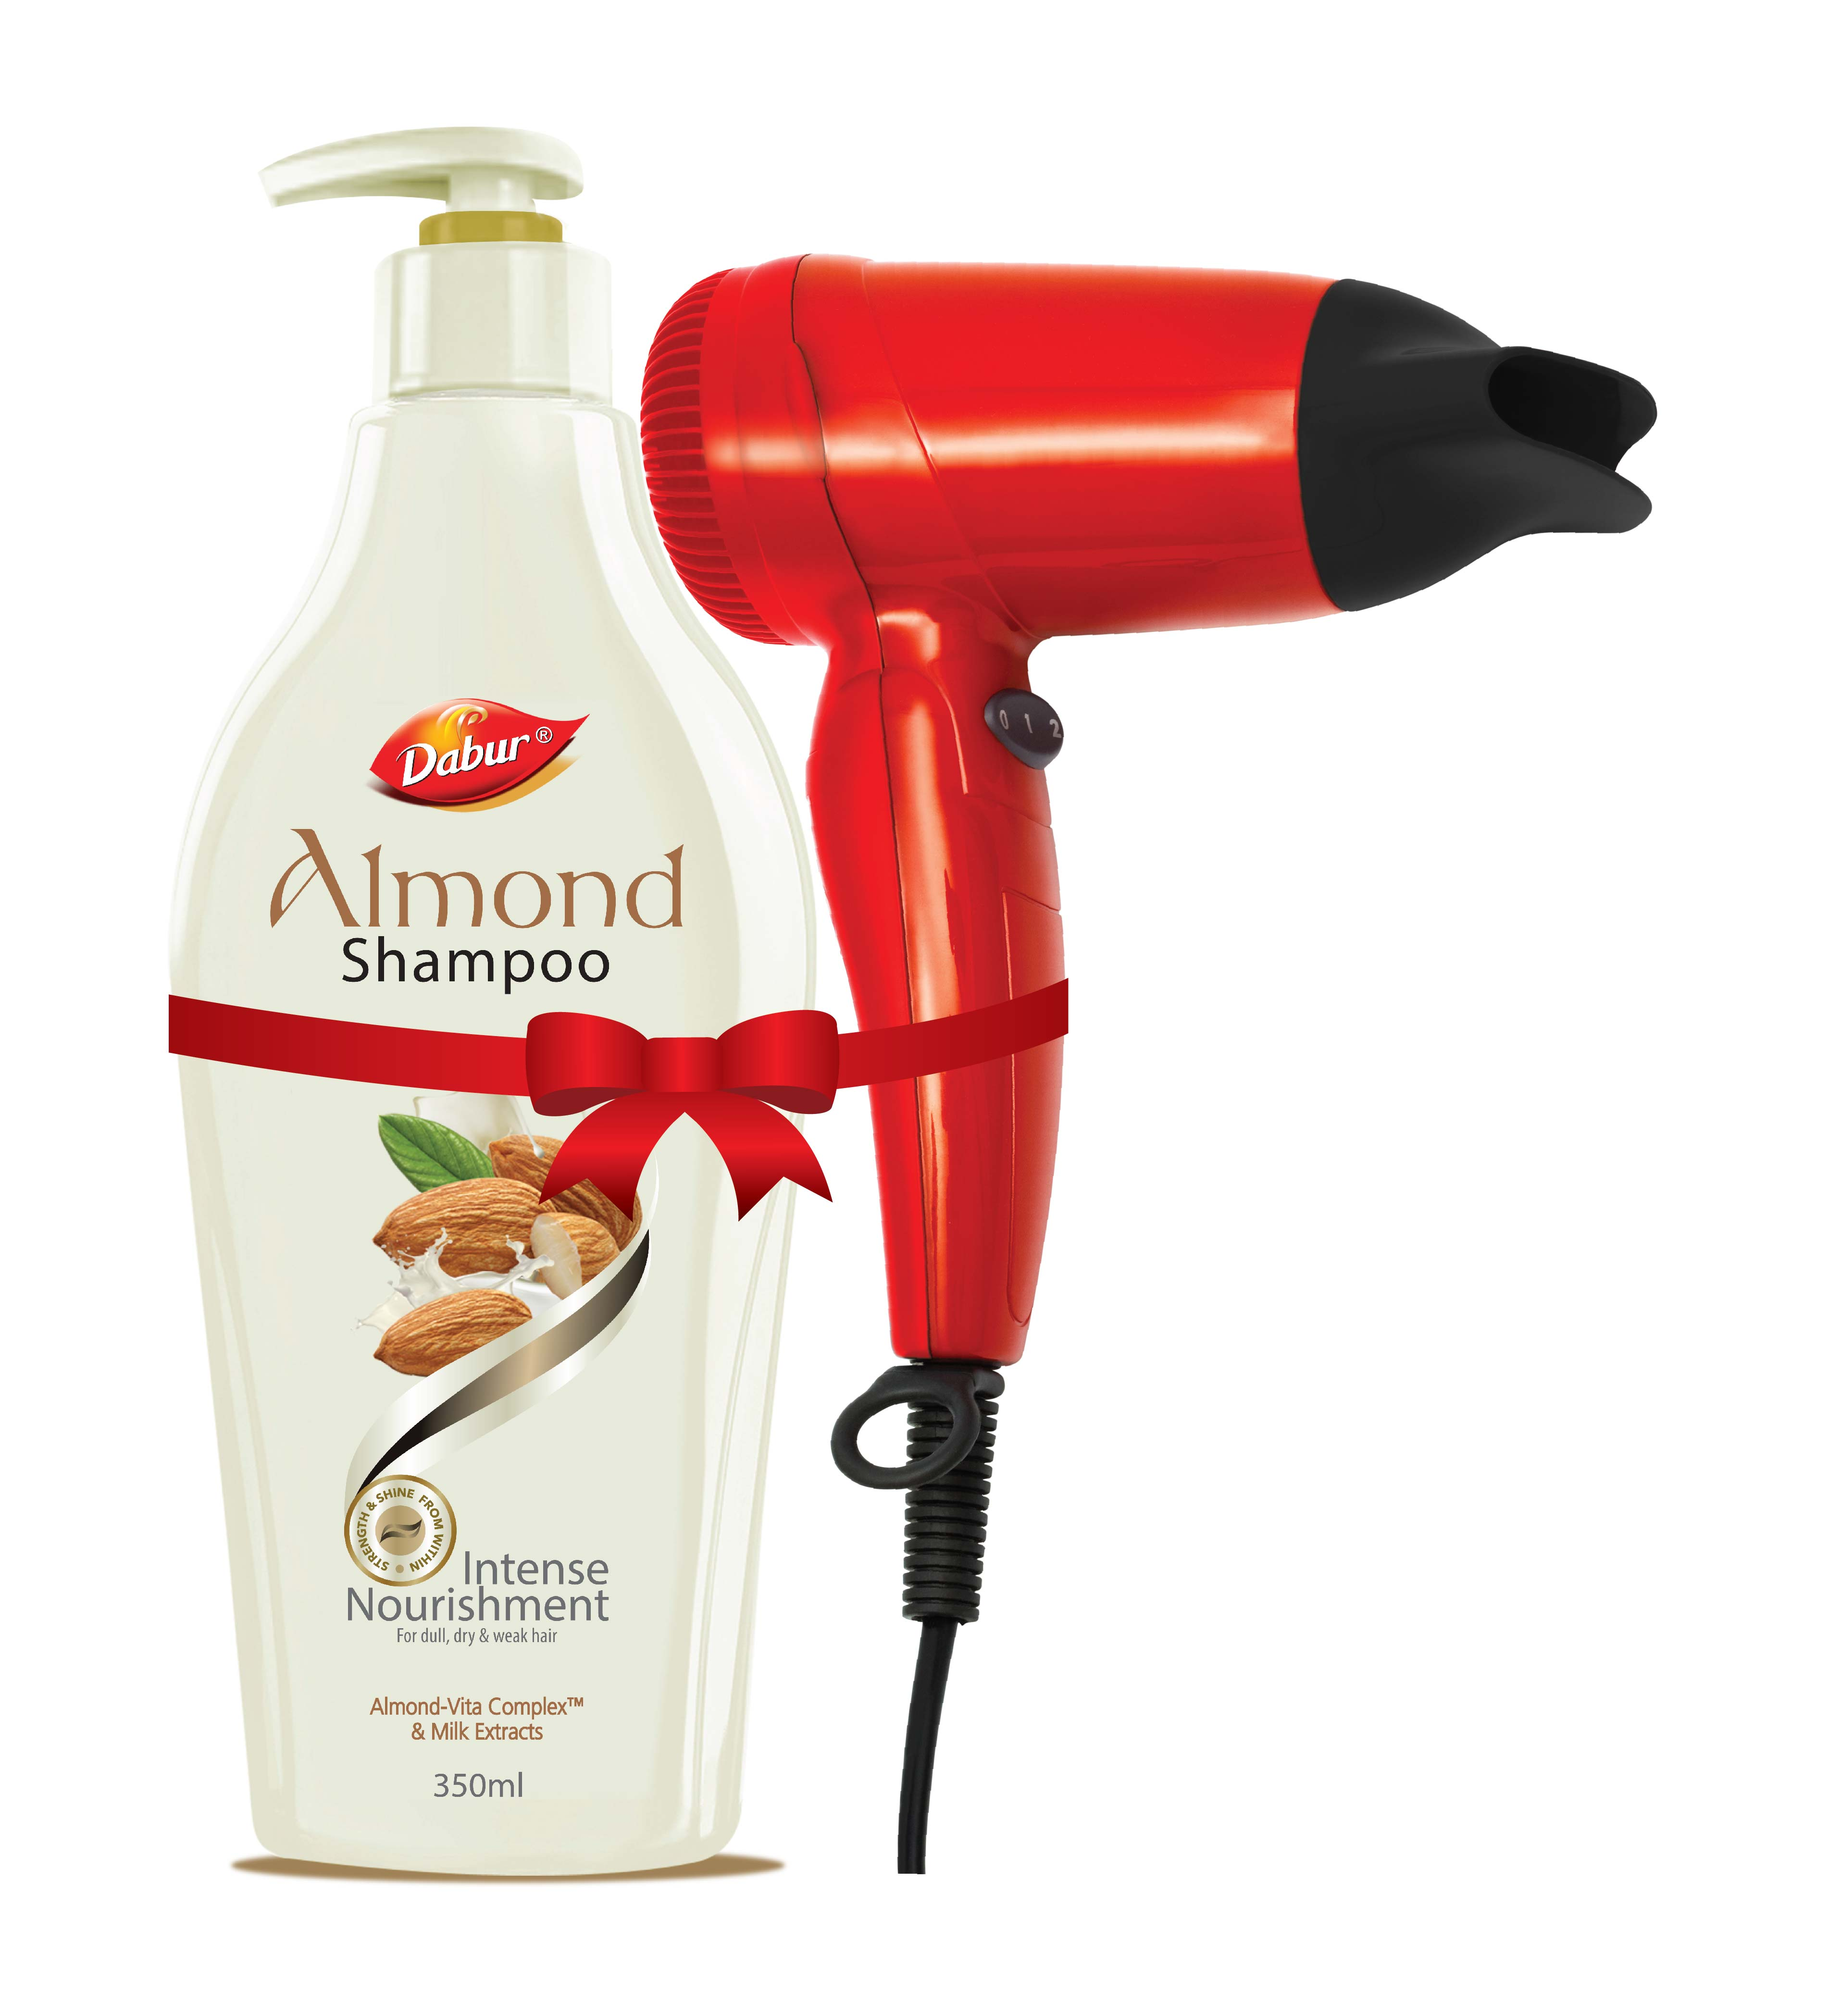 Dabur Almond Intense Nourishing Shampoo + Free Hair Dryer  available at Nykaa for Rs.255